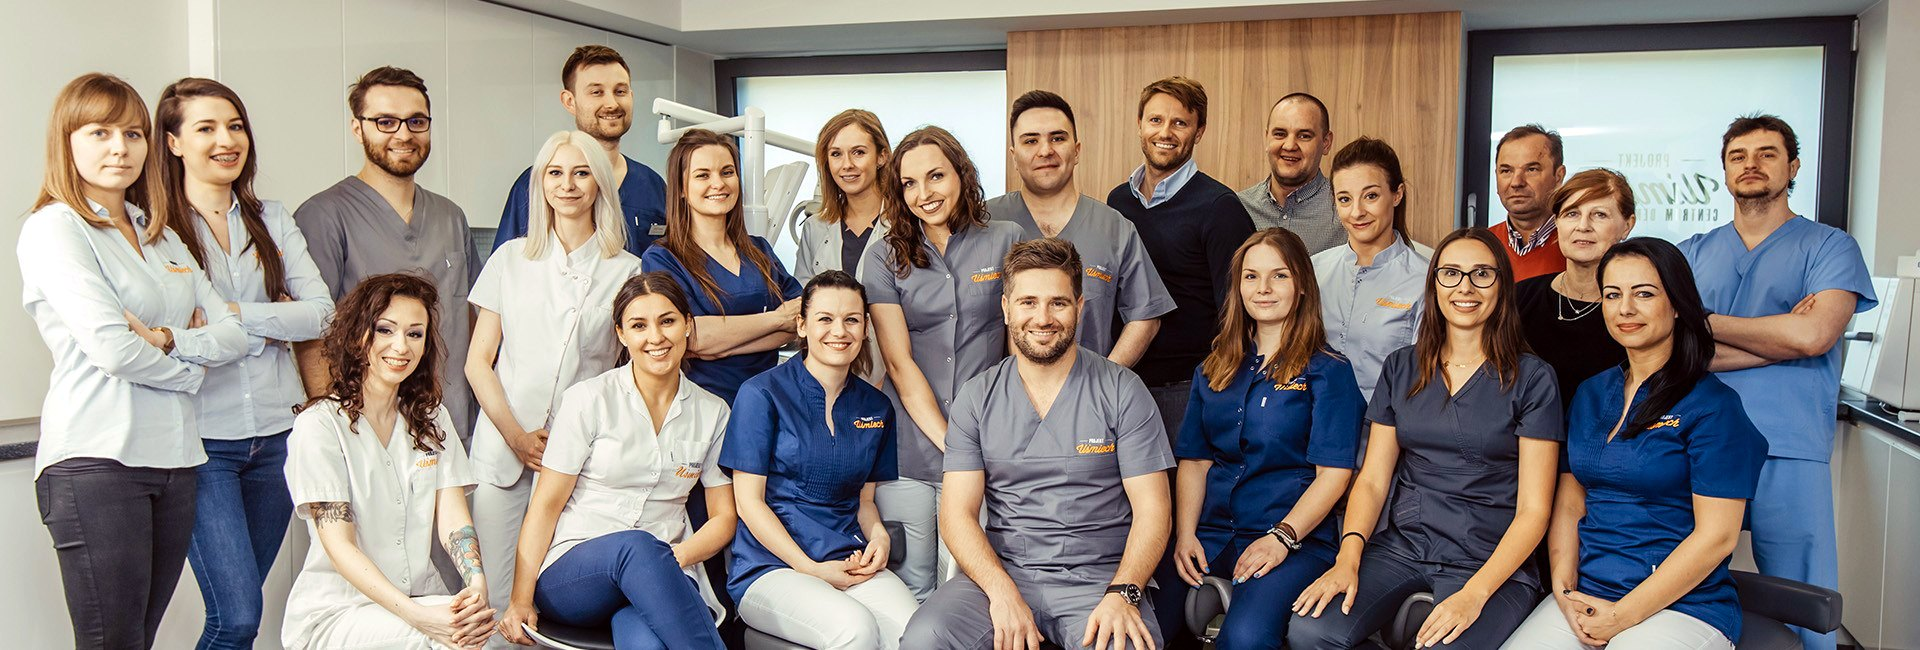 Project Smile Dental Clinic Team